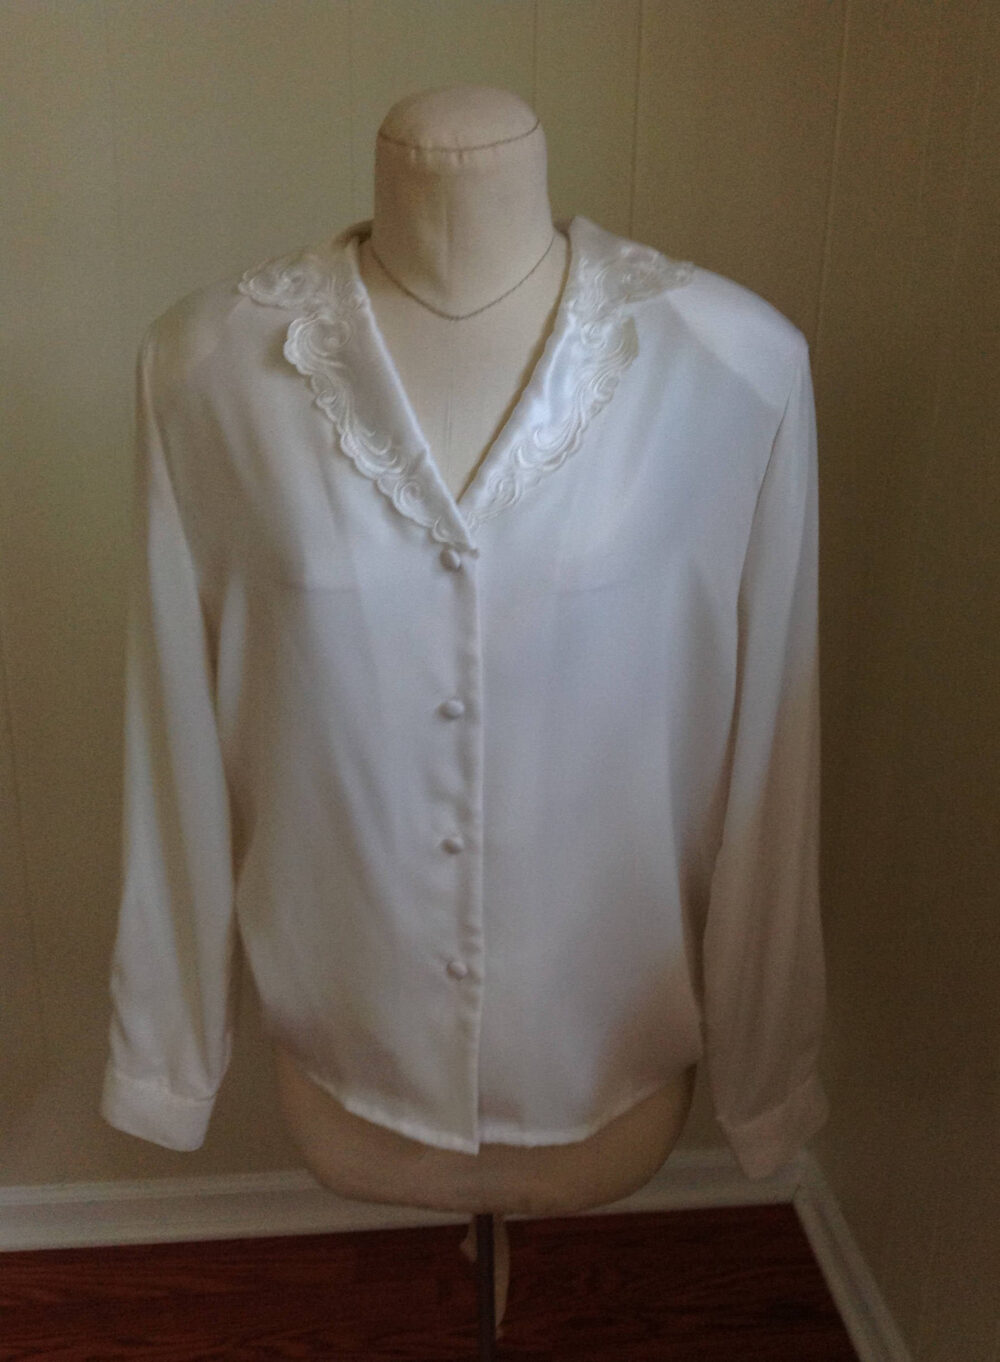 Women's Button Front Off White Satin Blouse With Embroidered Collar, Ilyssa Maxx For 3K, Classic Fancy V Neck , Tag Size 14